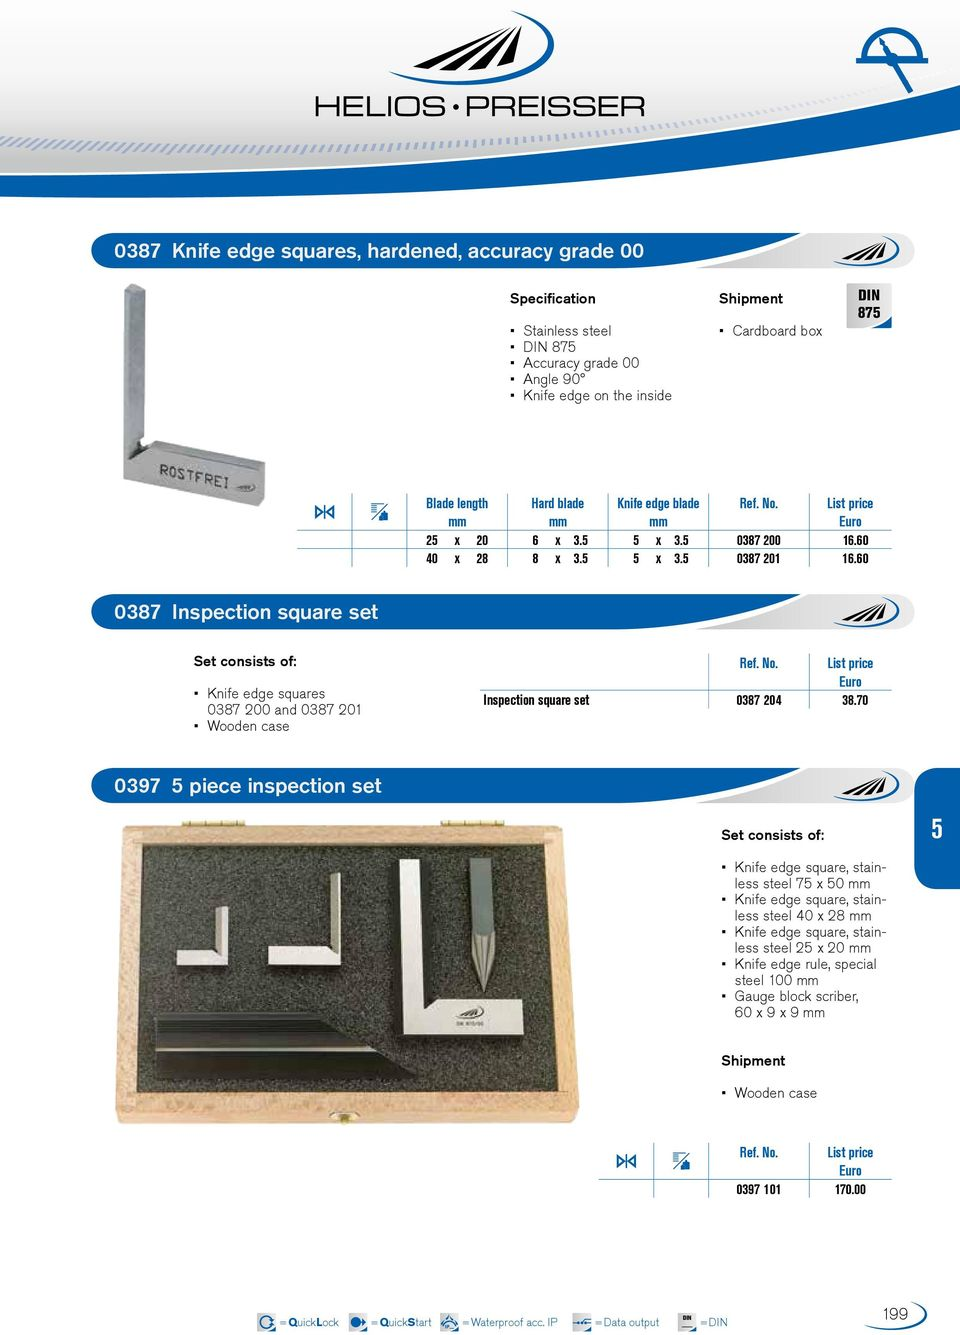 List price Euro Inspection square set 0387 204 38.